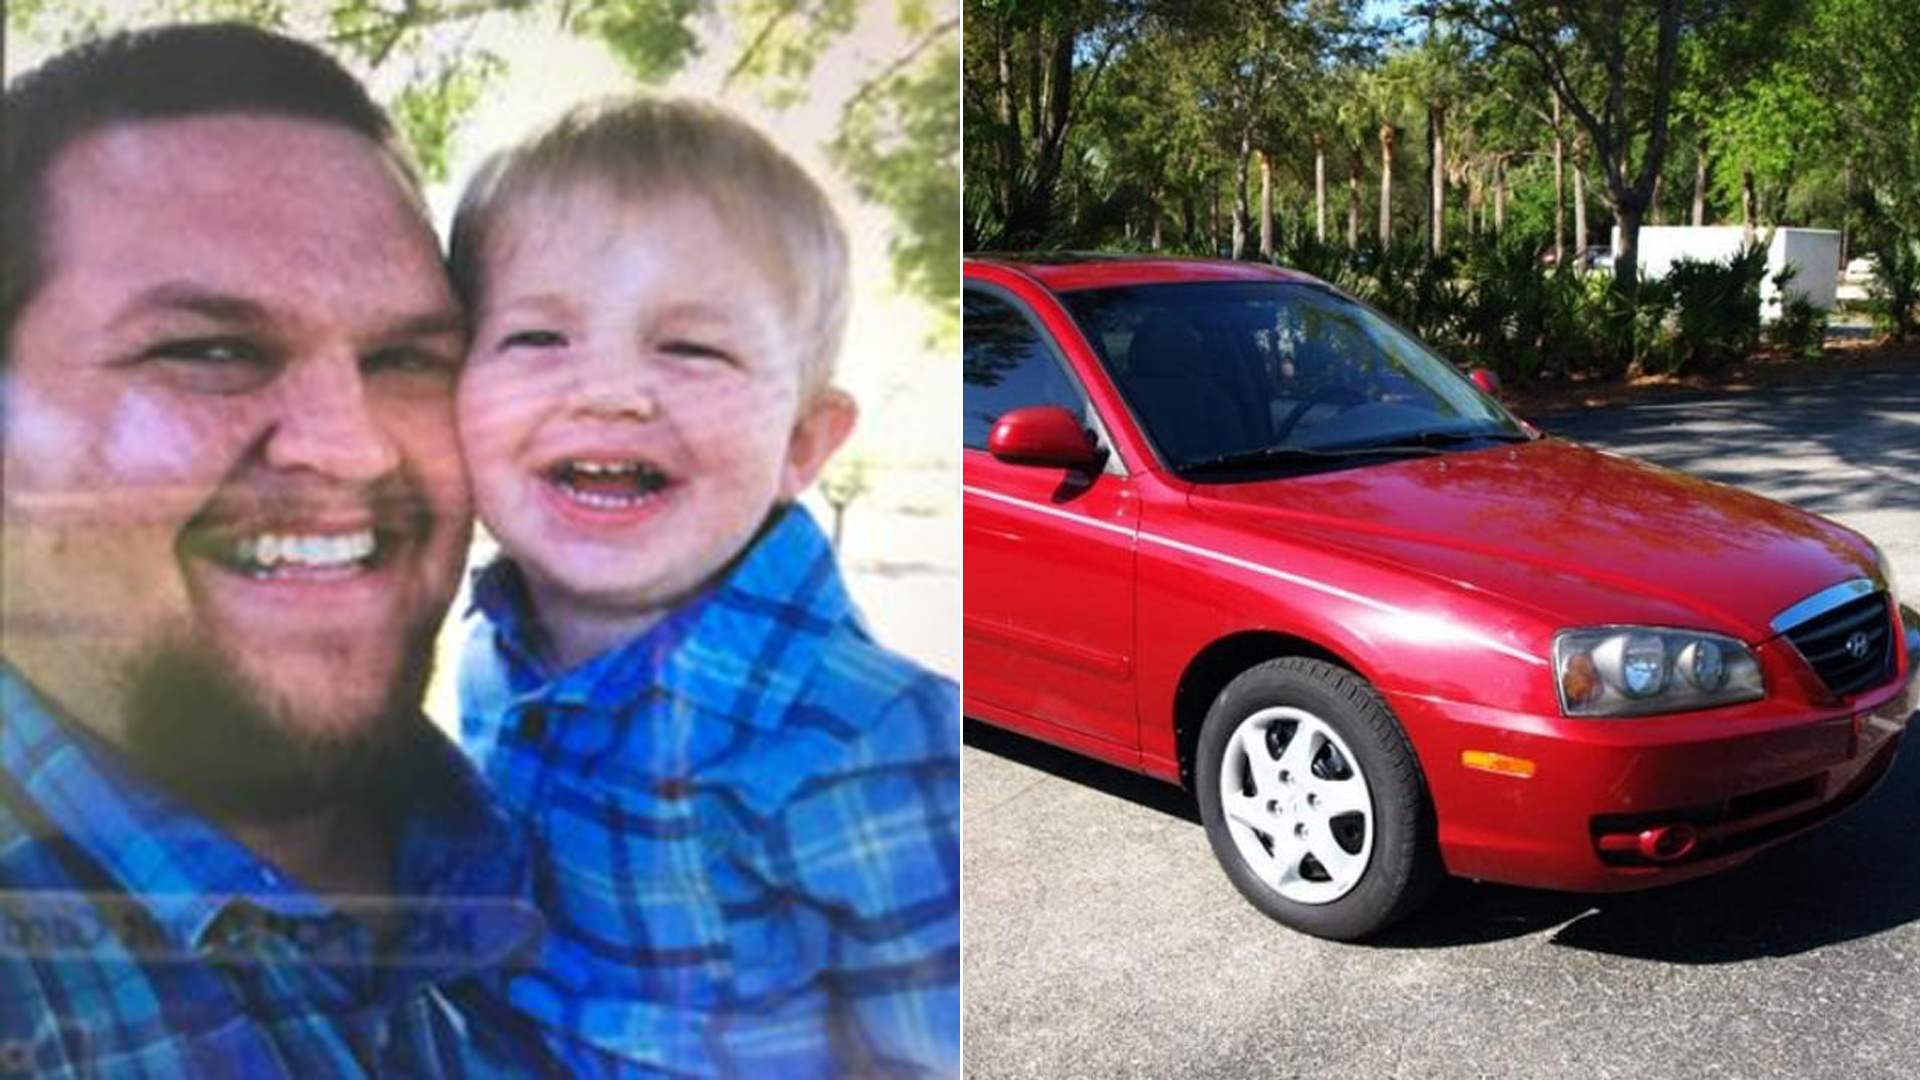 Steven and John Weir, left, appear in a photo released by California Highway Patrol on Sept. 21, 2019. On the right, a red Hyundai Elantra similar to Steven Weir's vehicle is seen in image released by the agency.